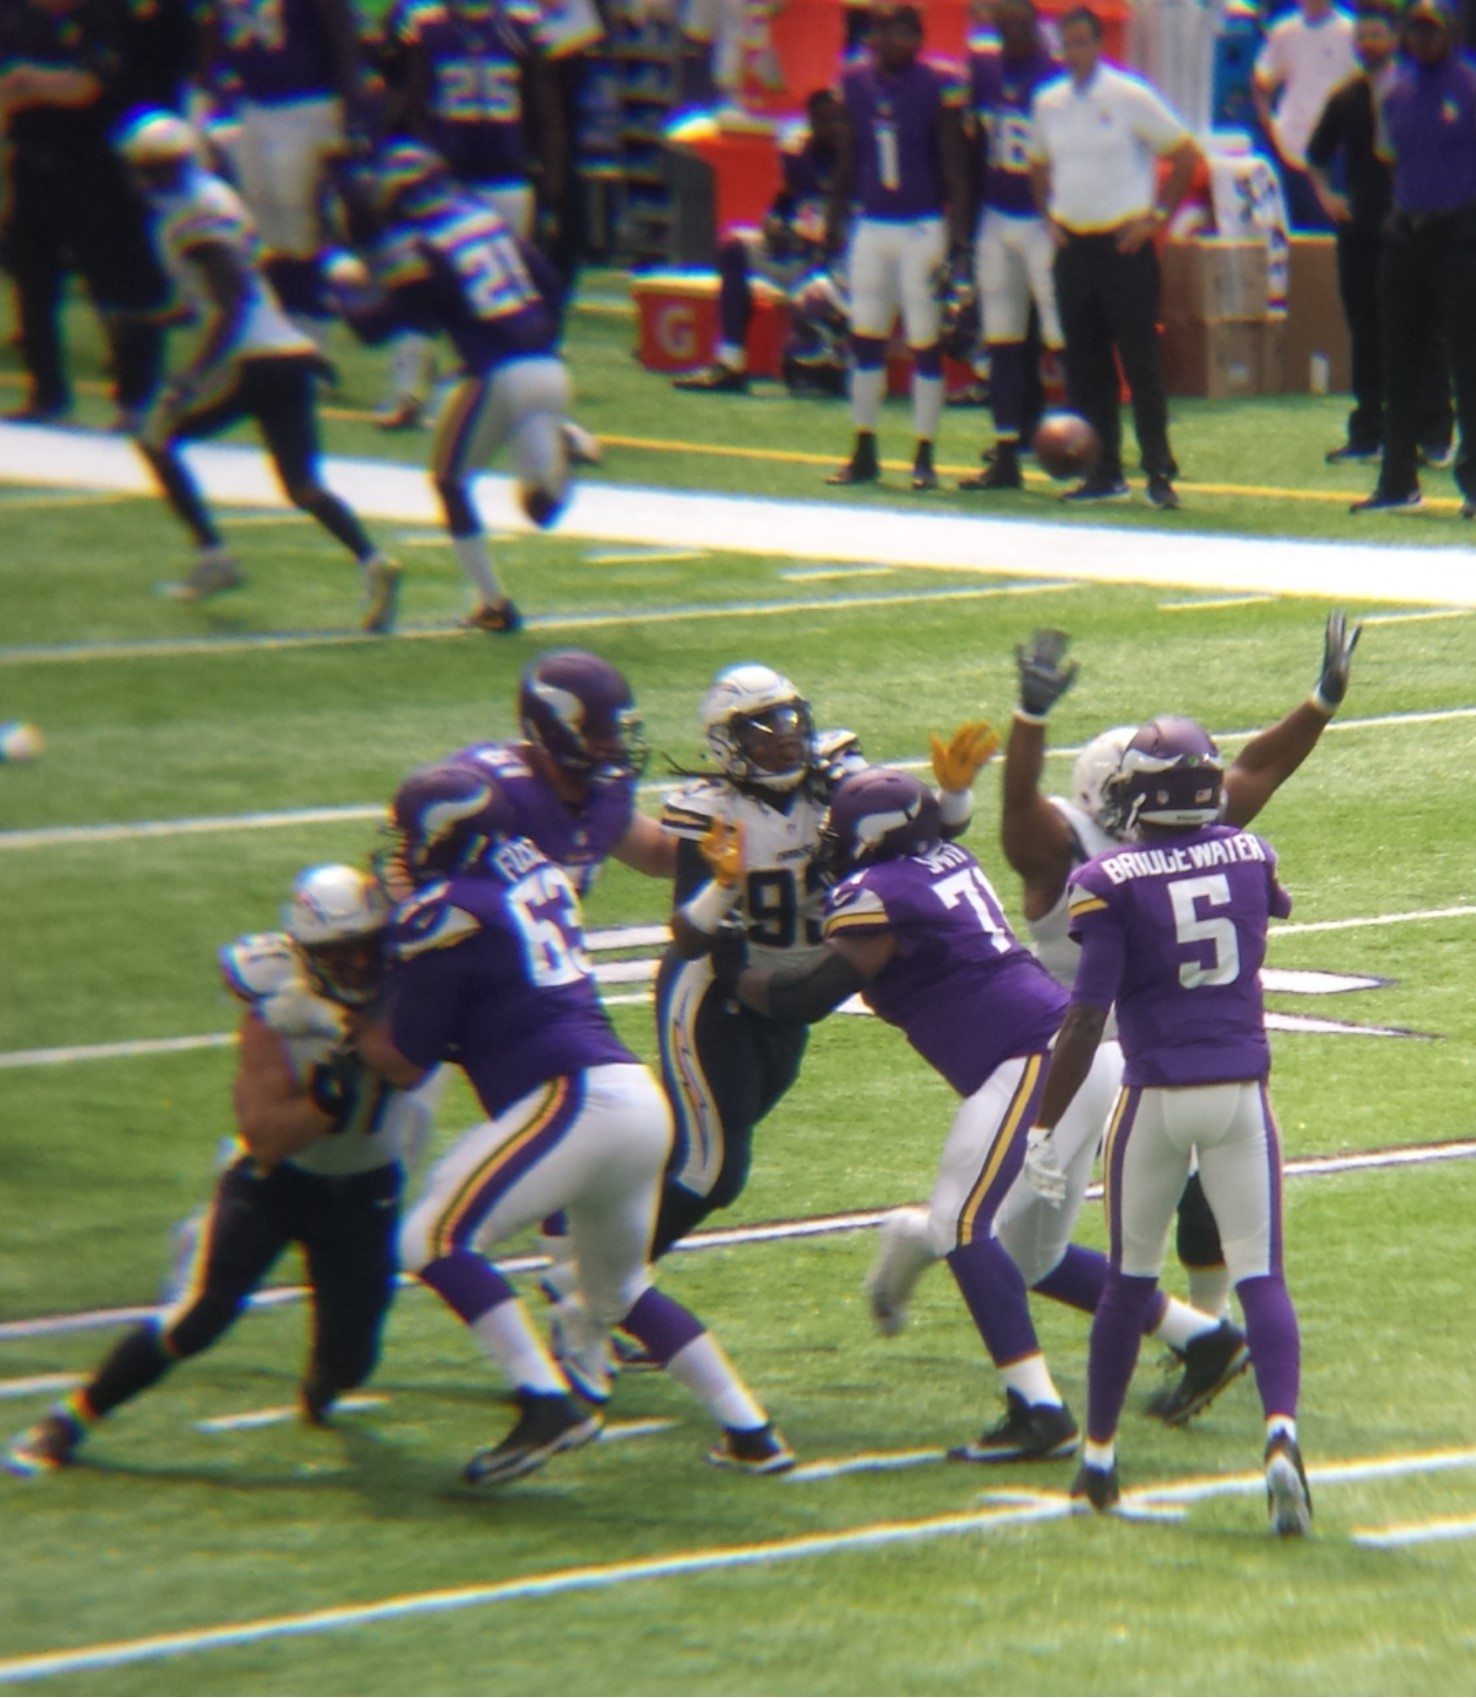 Minnesota Vikings U.S. Bank Stadium First Game - Teddy Bridgewater Pass